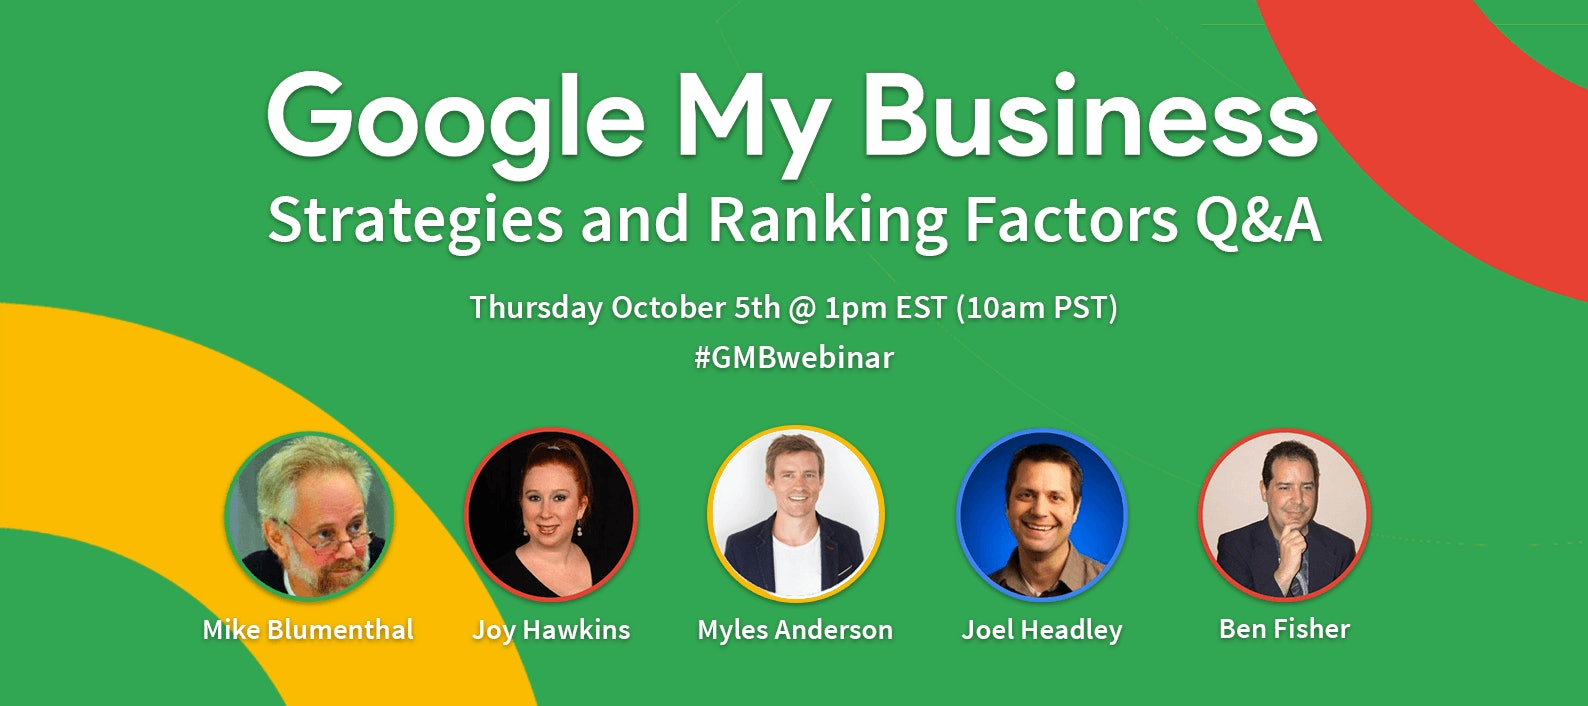 Google My Business Strategies and Ranking Factors Q&A